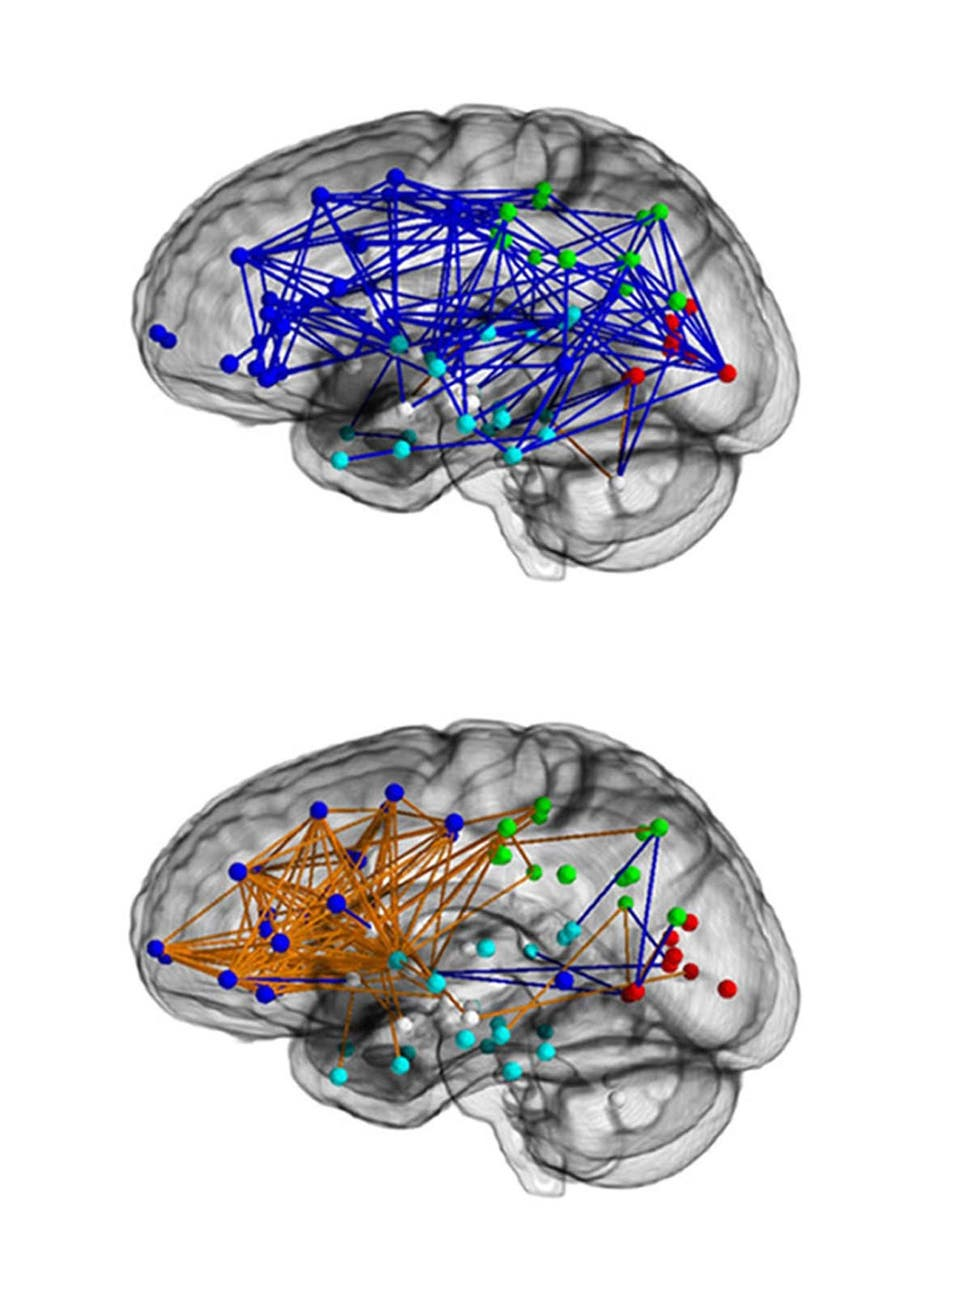 the hardwired difference between male and female brains could rh independent co uk hardwire your brain for success hardwiring your brain to think like a nurse